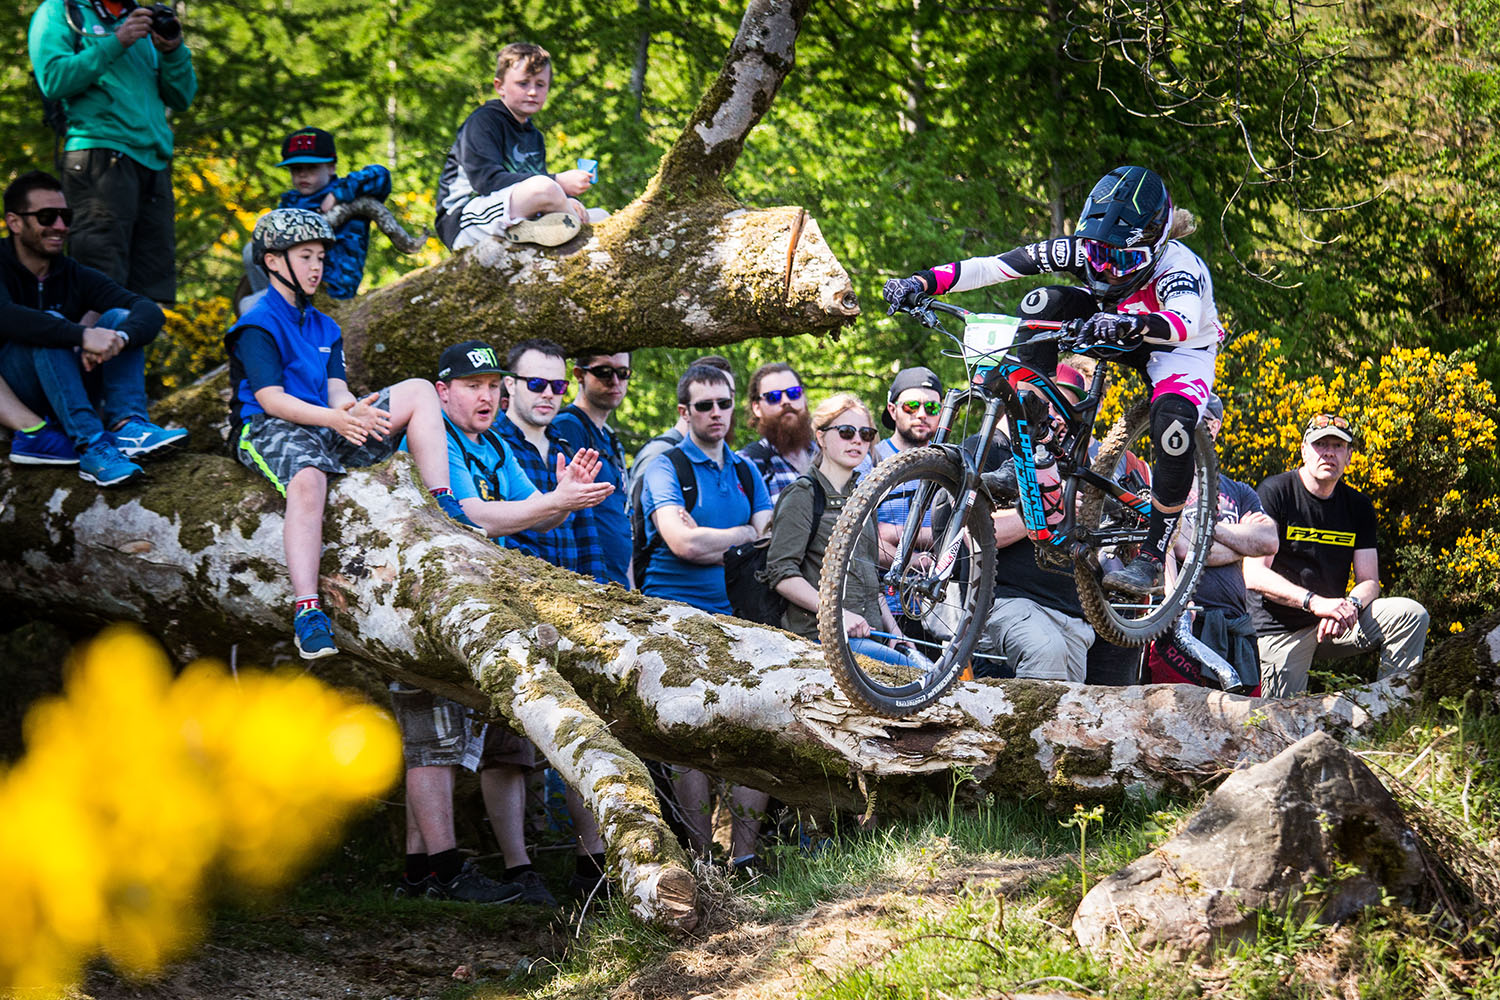 Log jump at the top of stage 5. Photo: Lapierre- Jeremy Reuiller